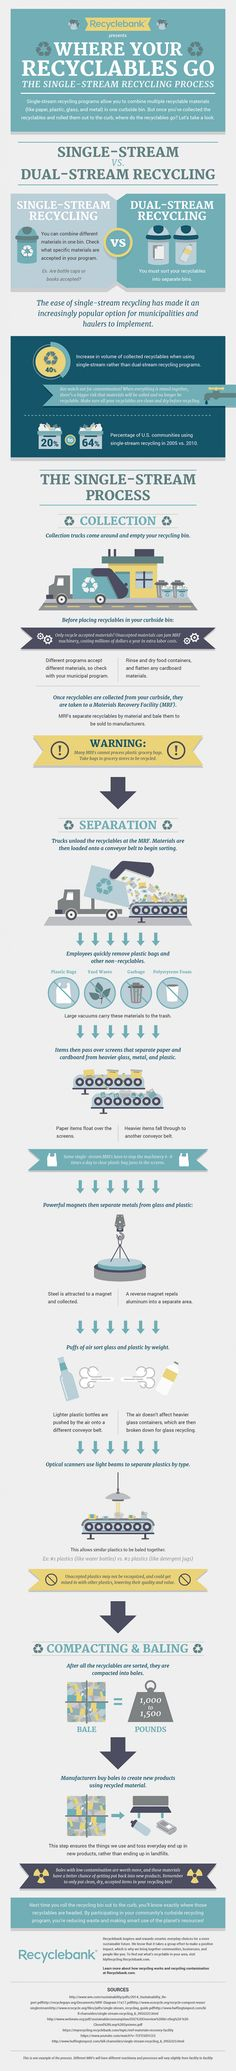 Where Your Recycling Goes: The Single-Stream Recycling Process by Recyclebank